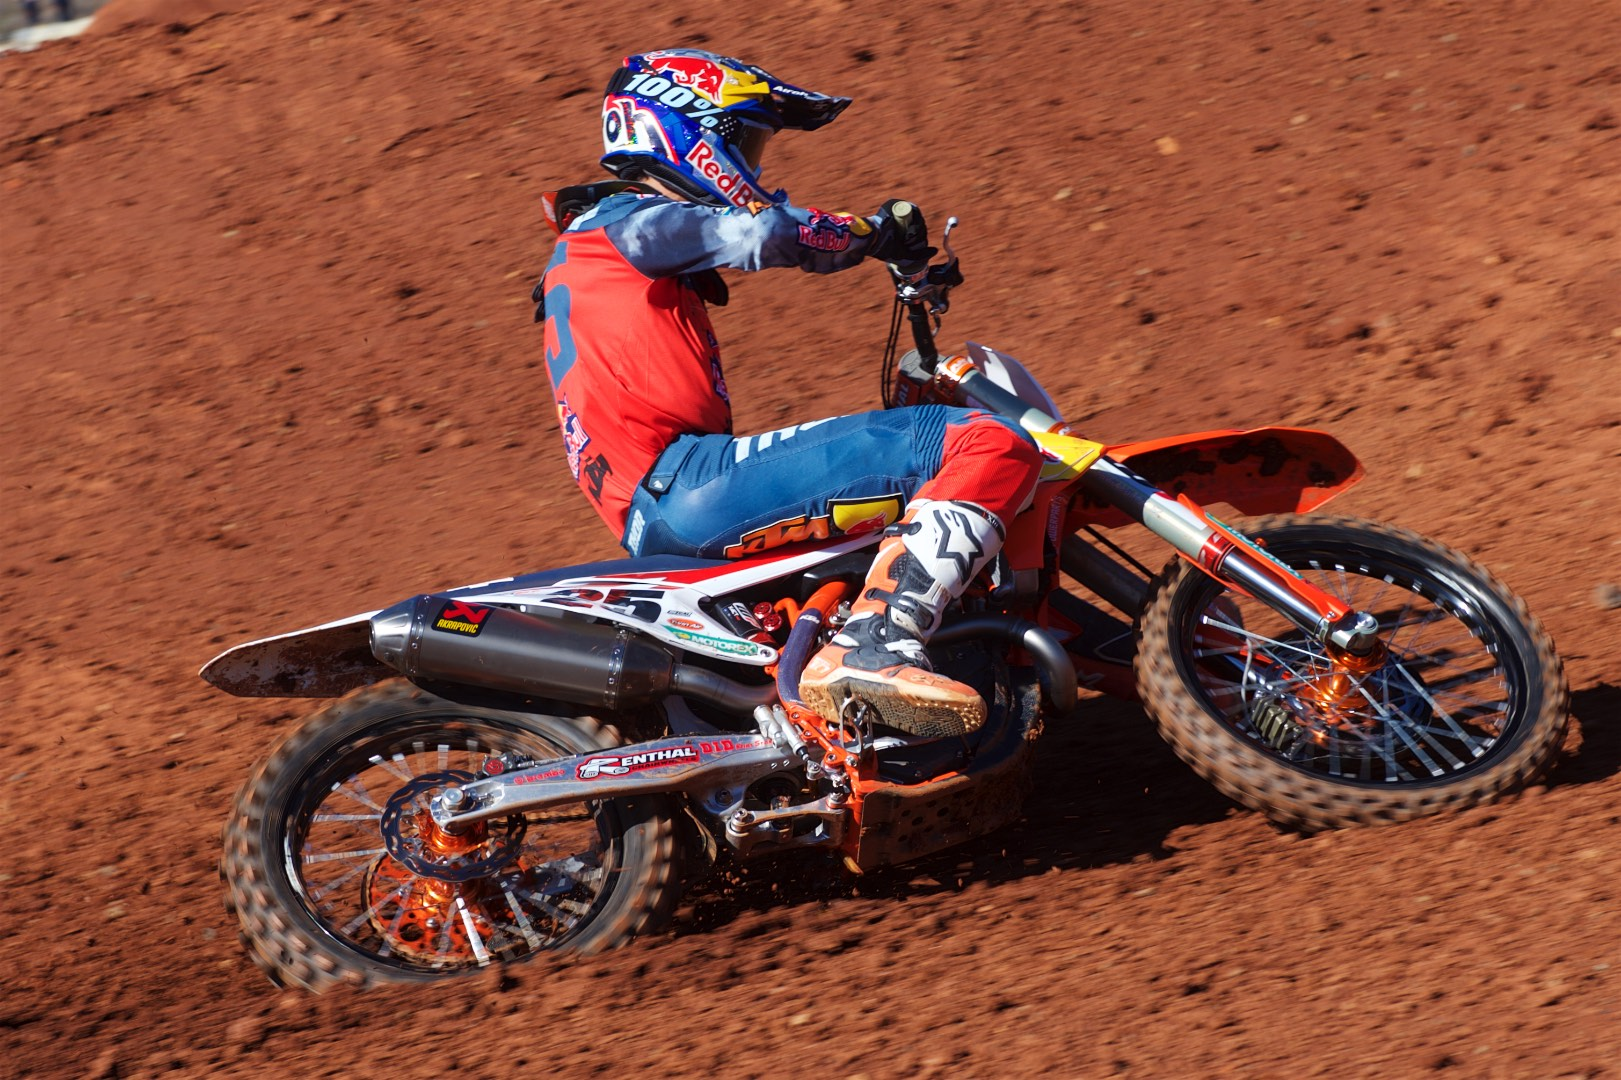 2019 Pro Motocross Tv Schedule Us Cable And Streaming